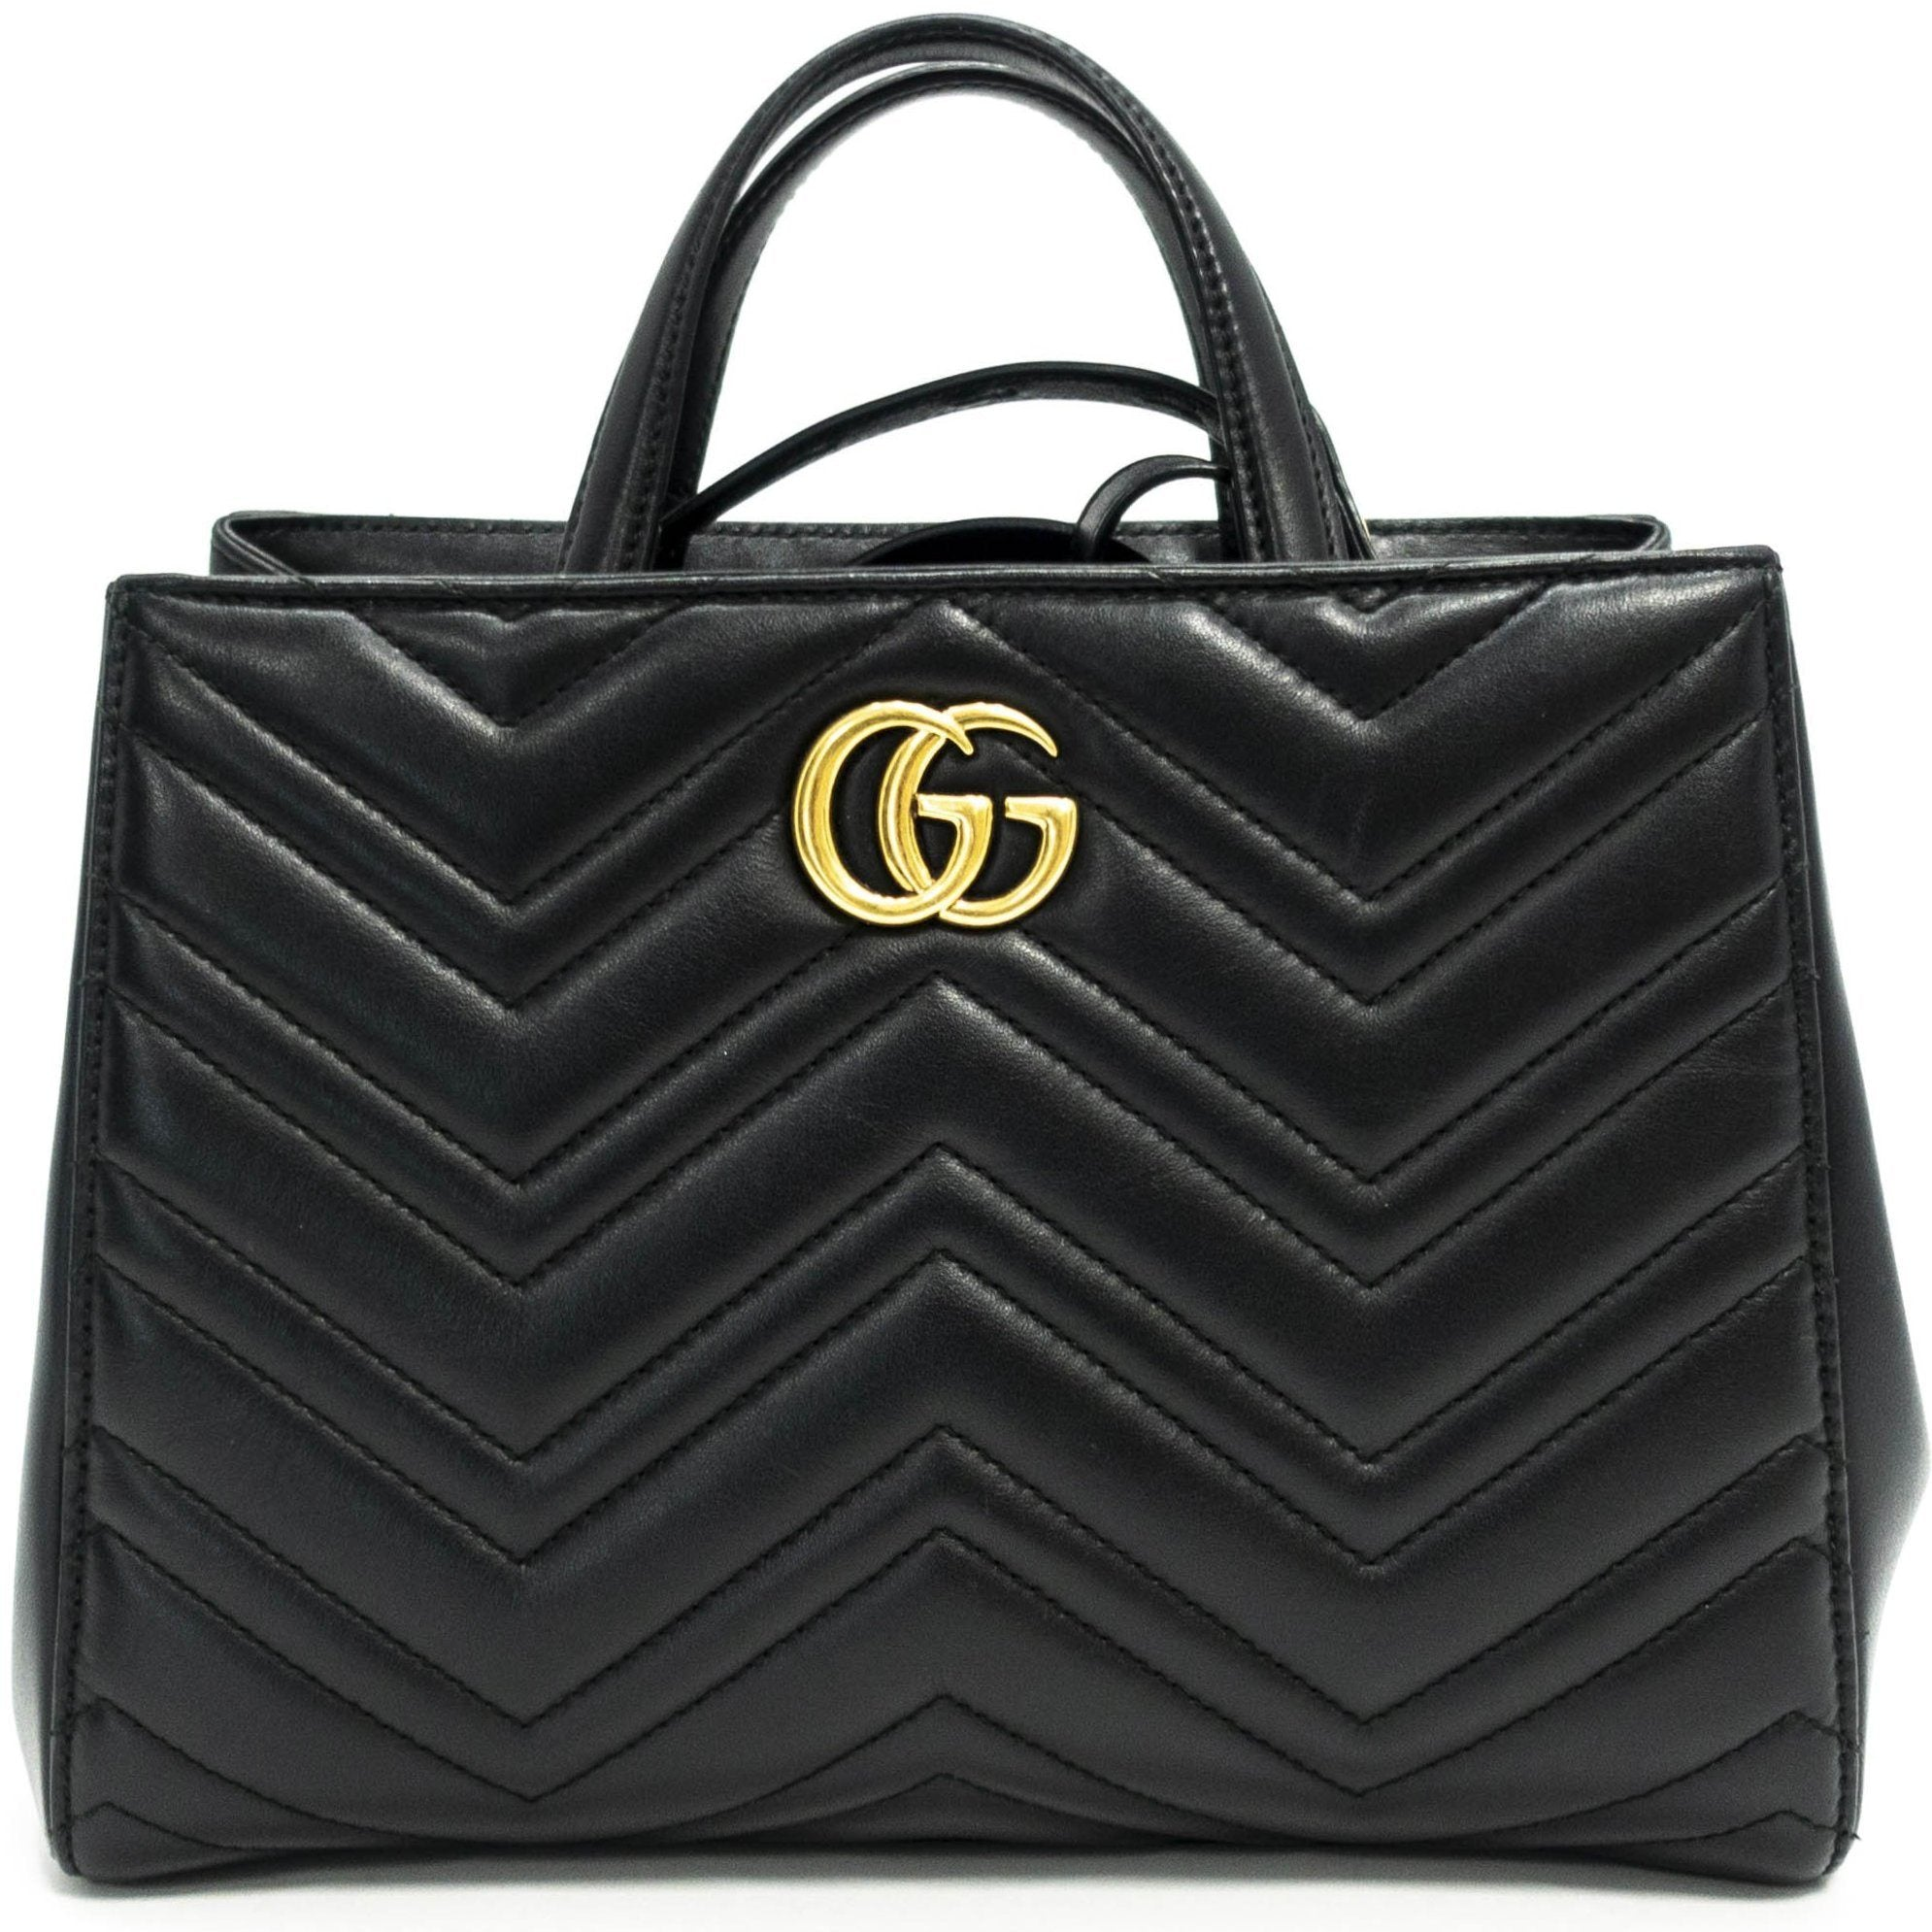 70ca68c132dc5 Gucci GG Marmont Small Matelasse Top Handle Bag - Oliver Jewellery